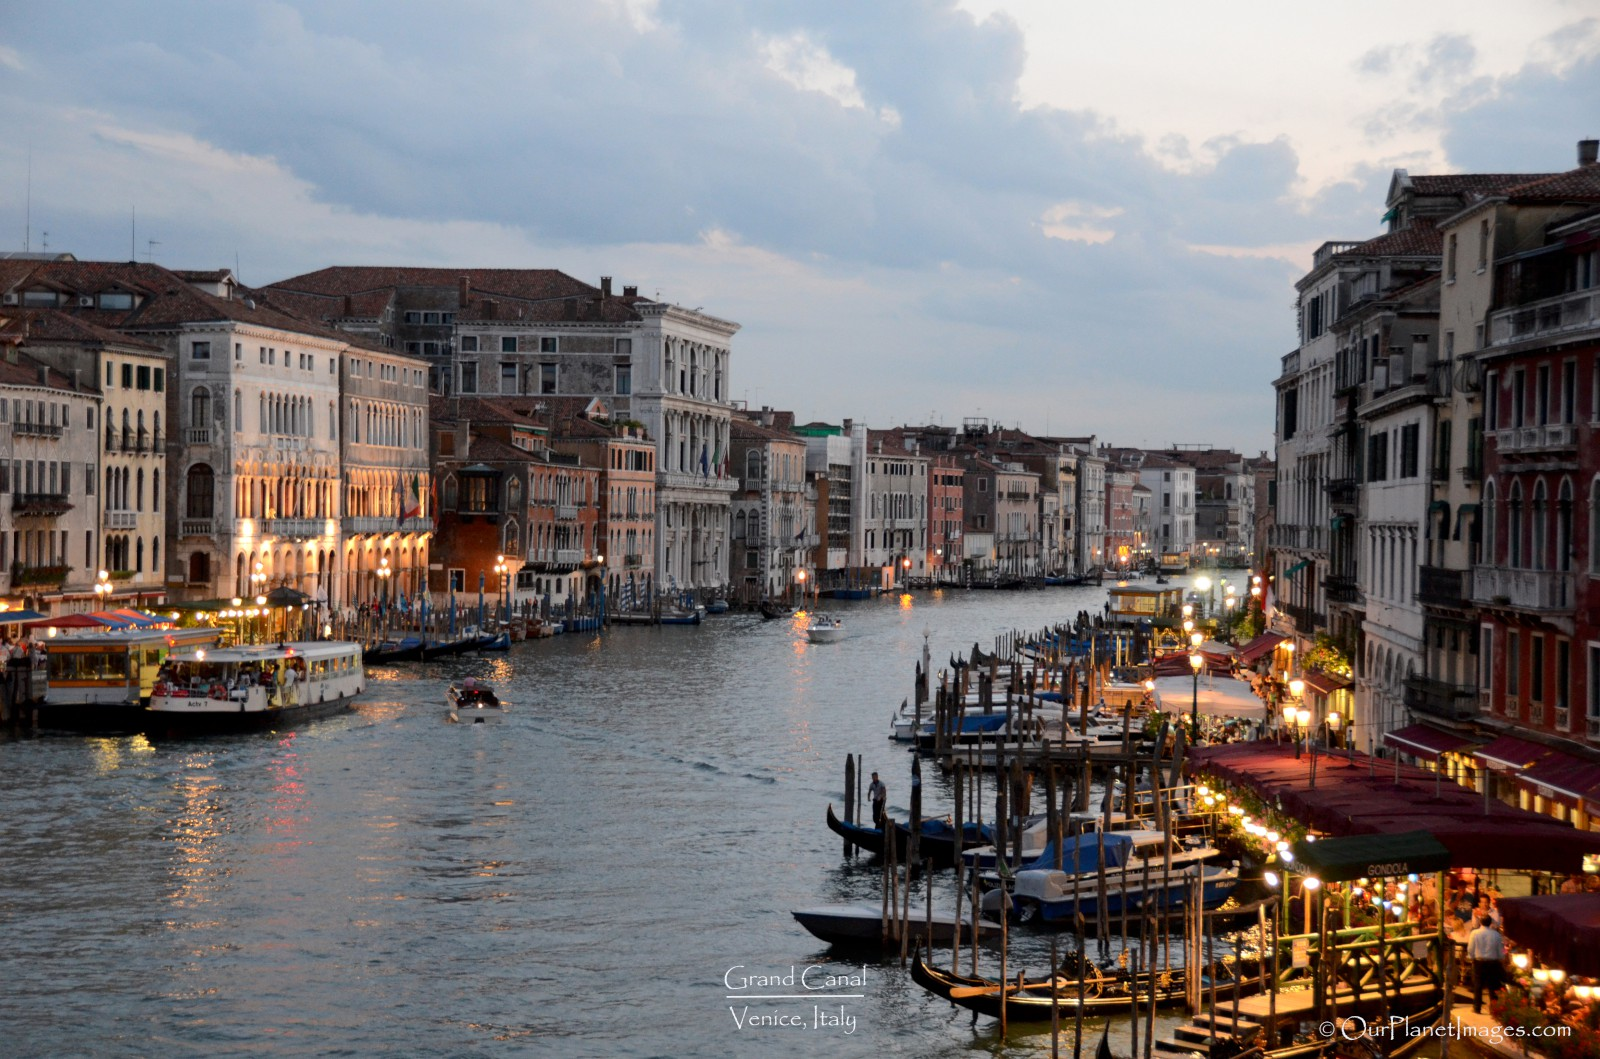 Grand Canal at Dusk in Venice Italy